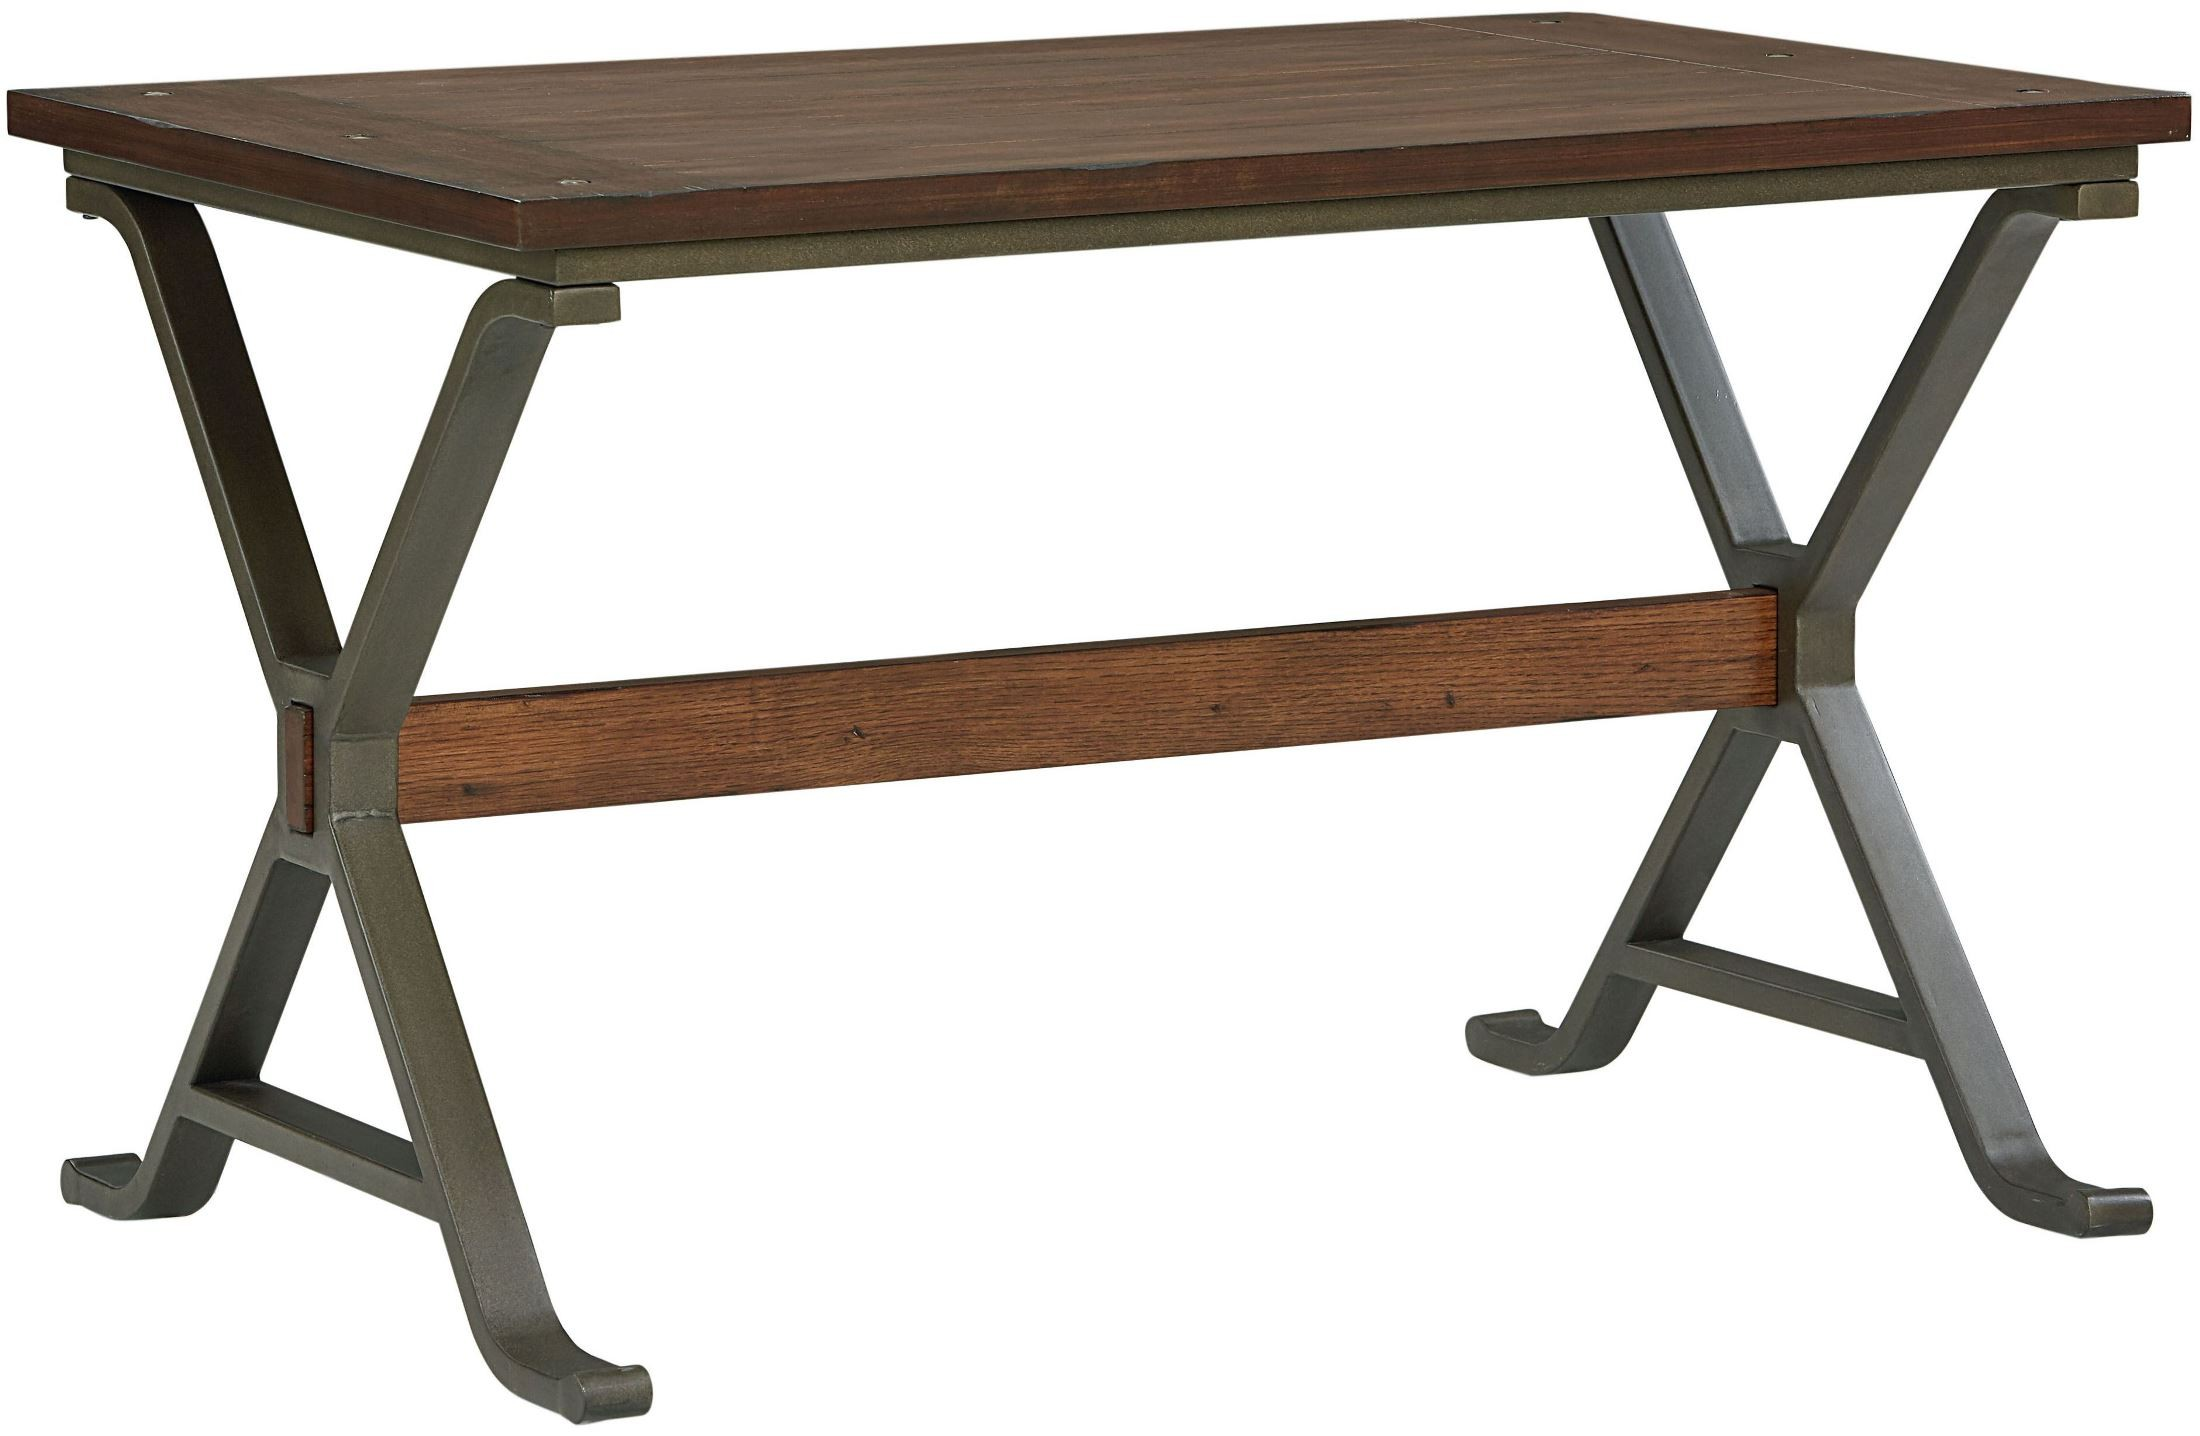 Reynolds rustic tobacco brown rectangular trestle dining for Rustic trestle dining table